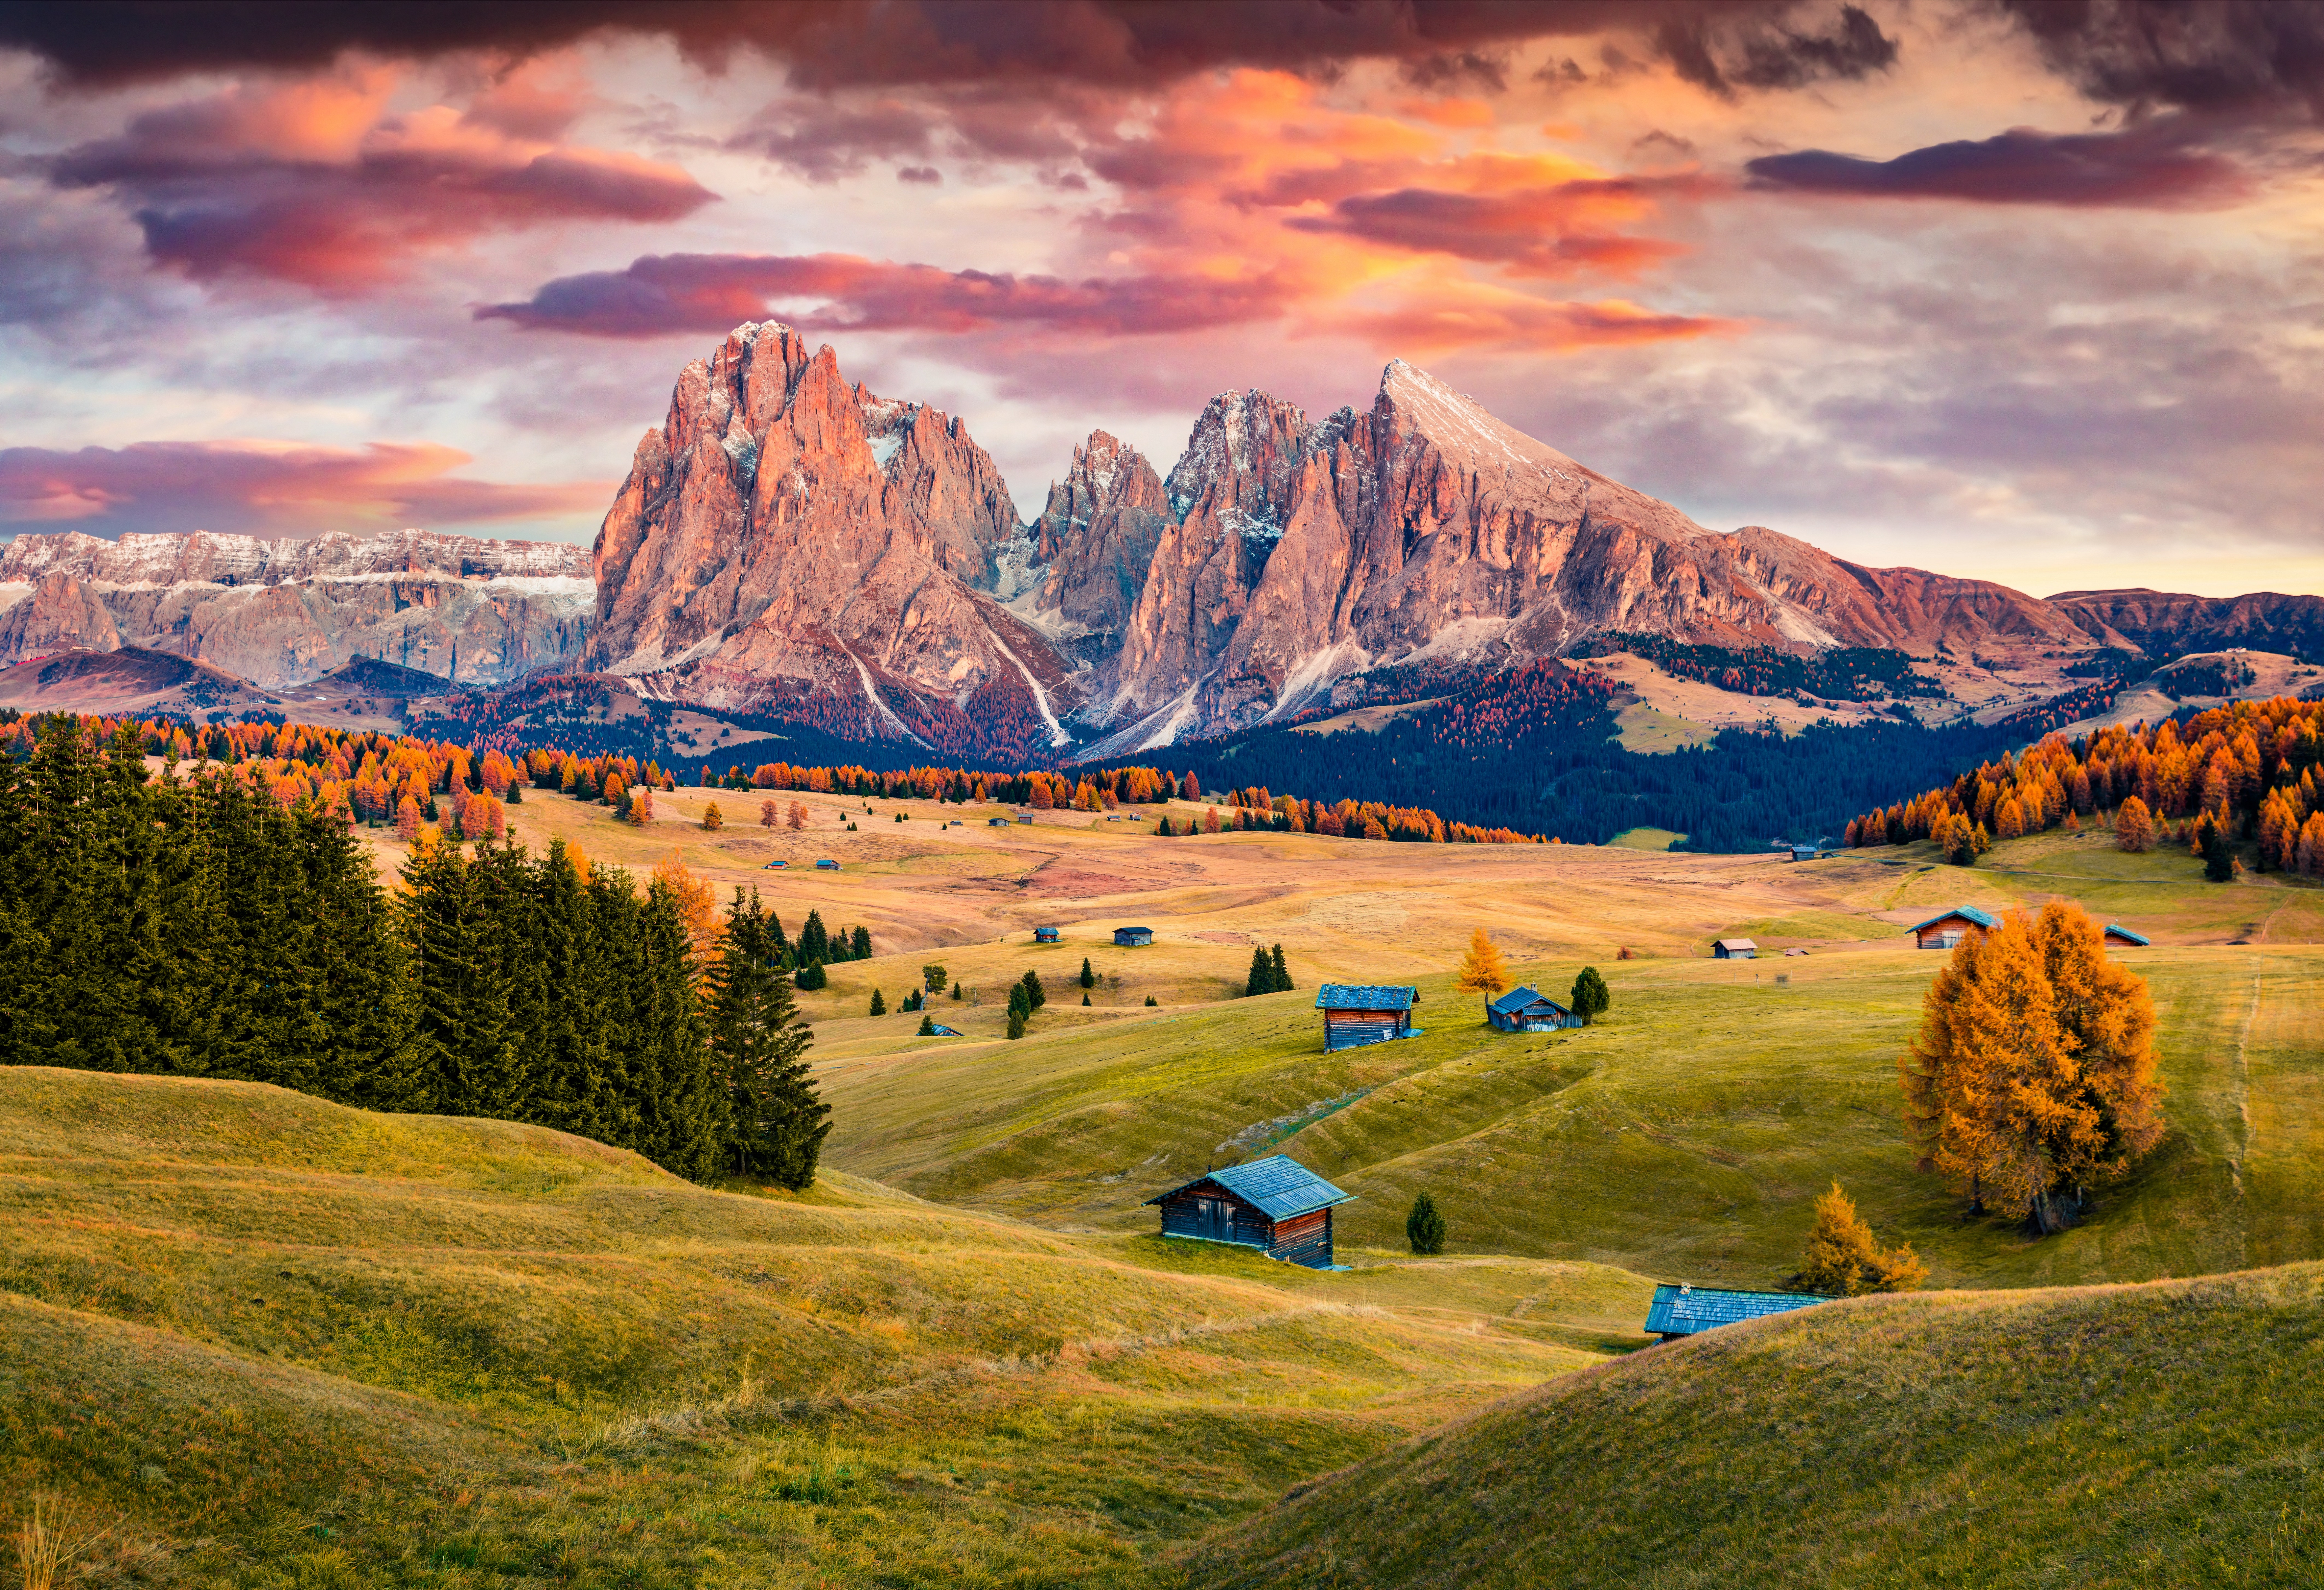 General 8500x5816 landscape mountains nature sunset forest trees valley Italy Dolomites (mountains)